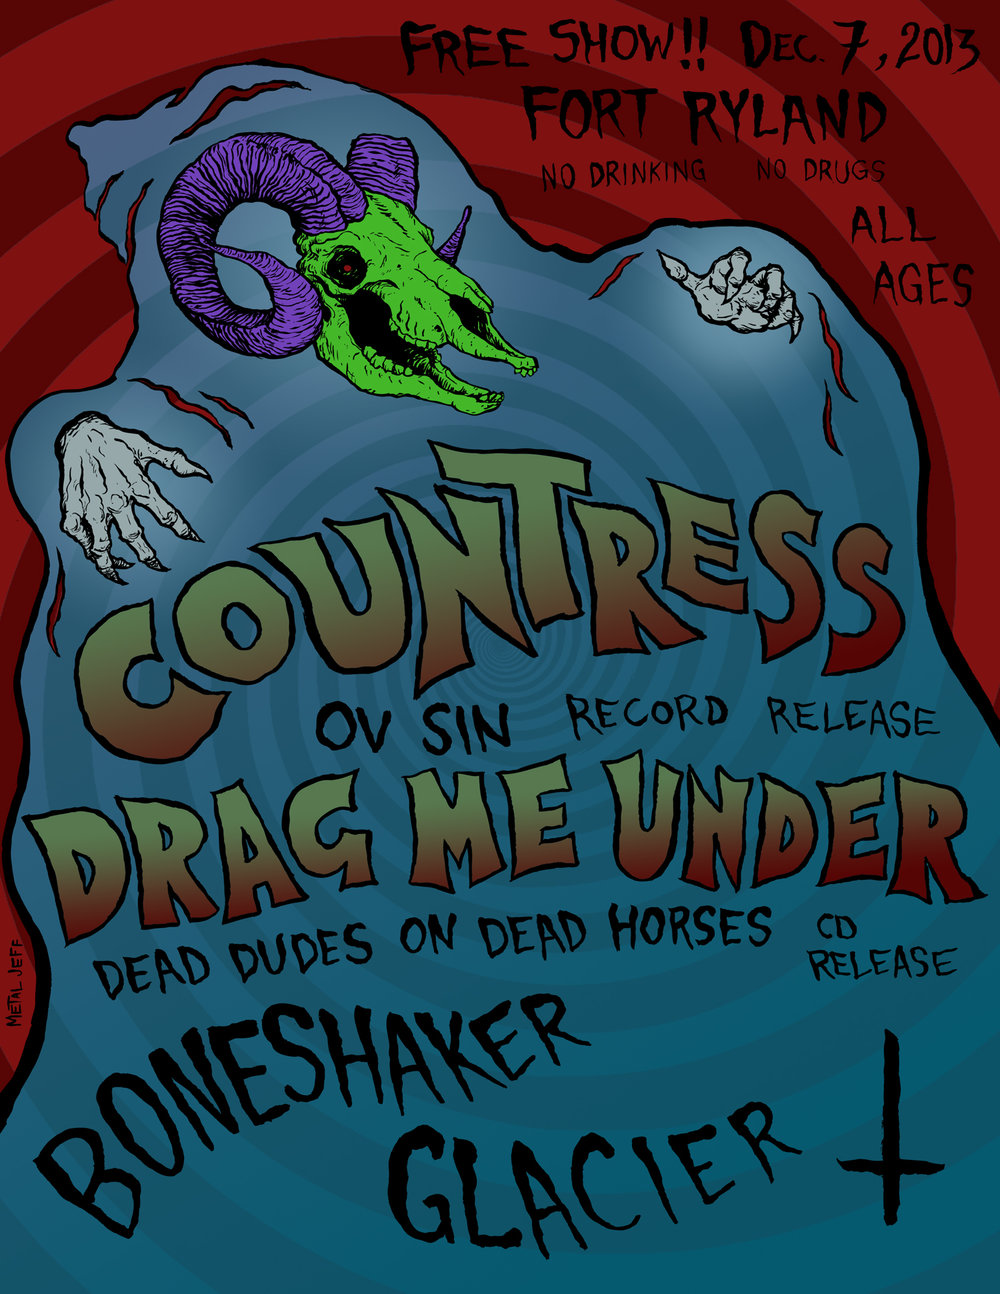 Countress DMU flier site.jpg